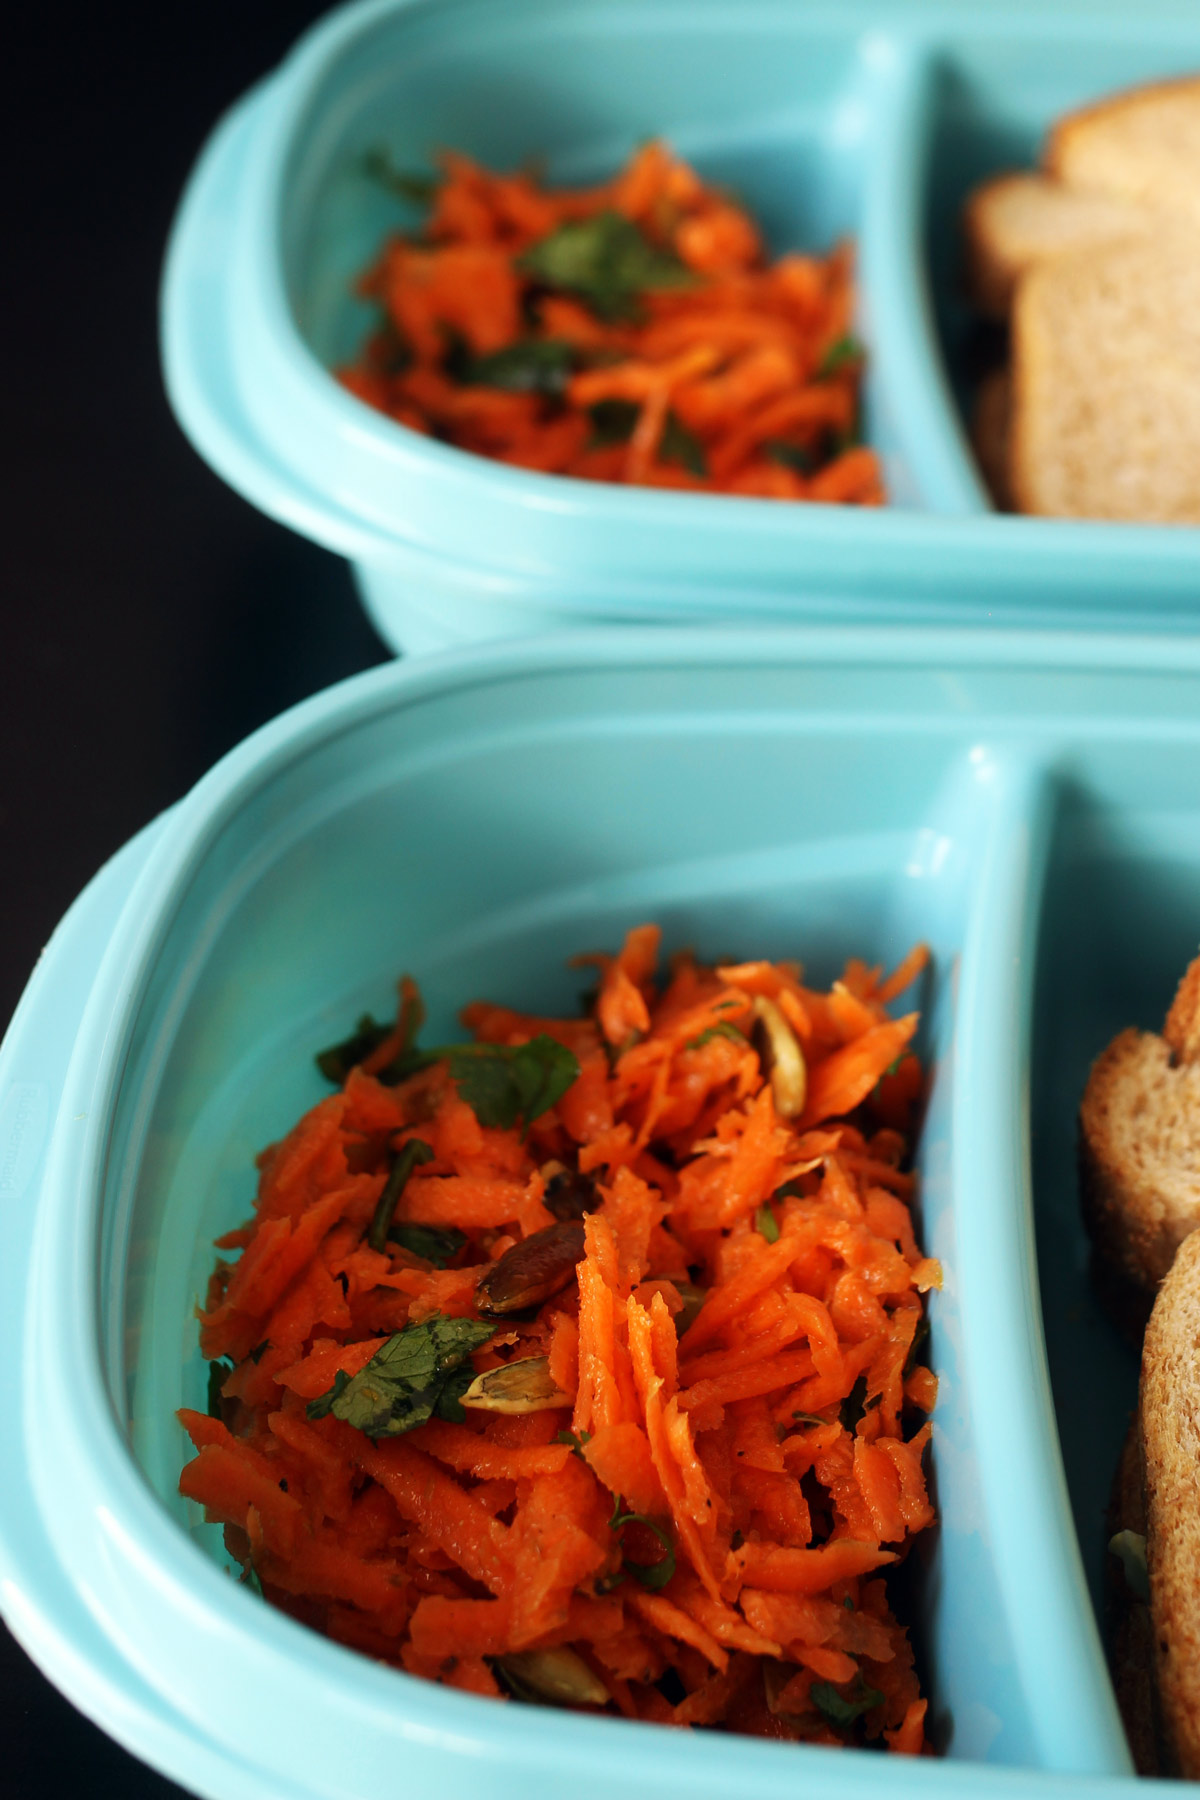 carrot salad in meal prep containers